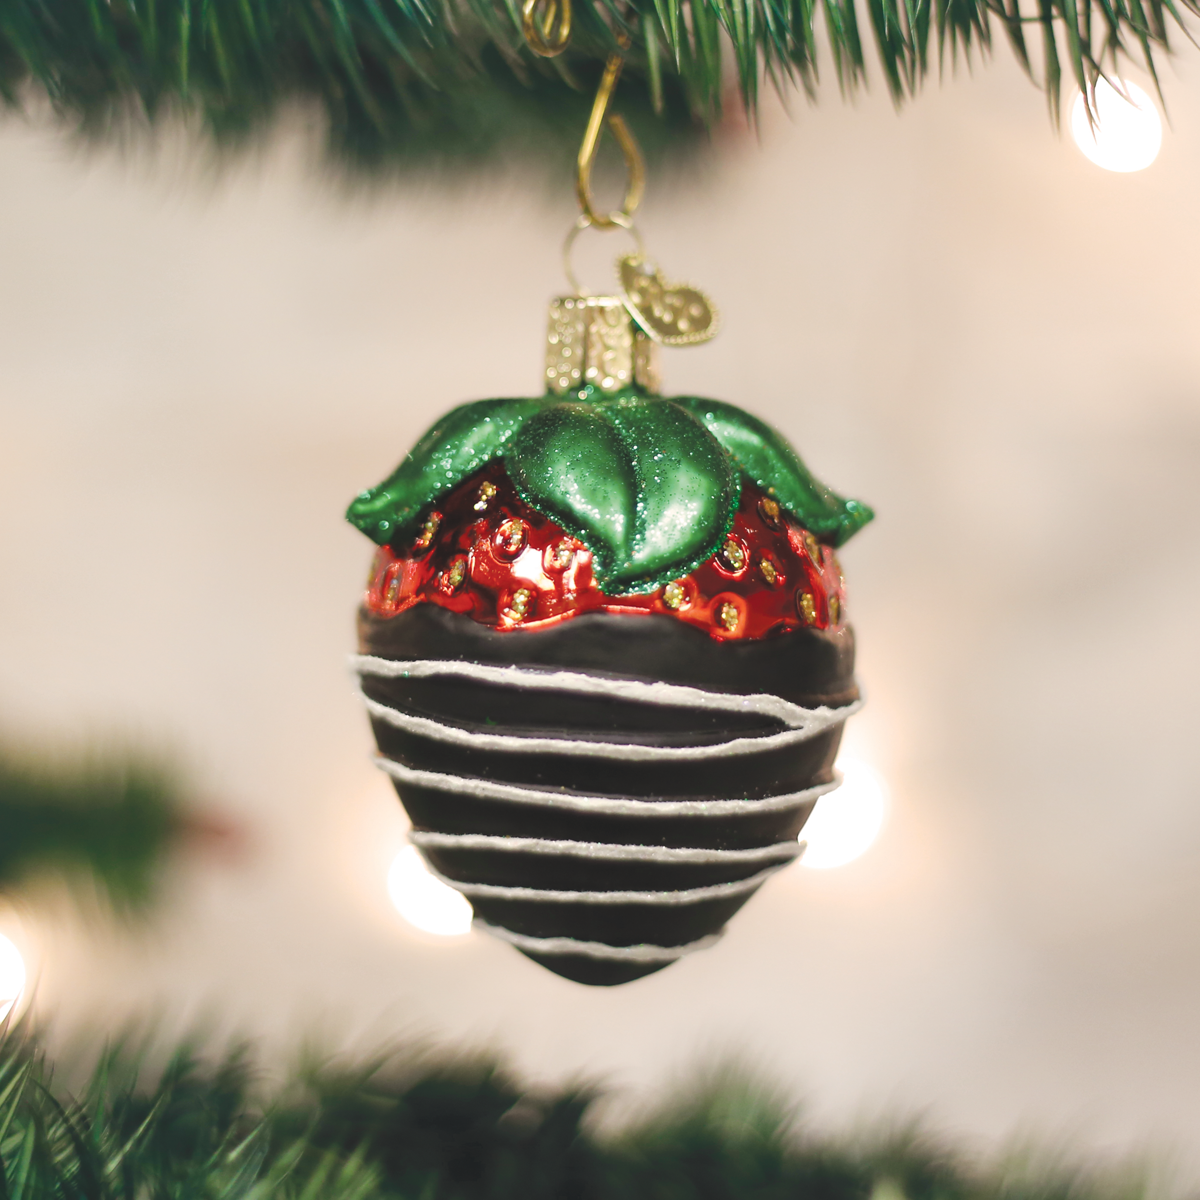 Chocolate Dipped Stawberry Ornament